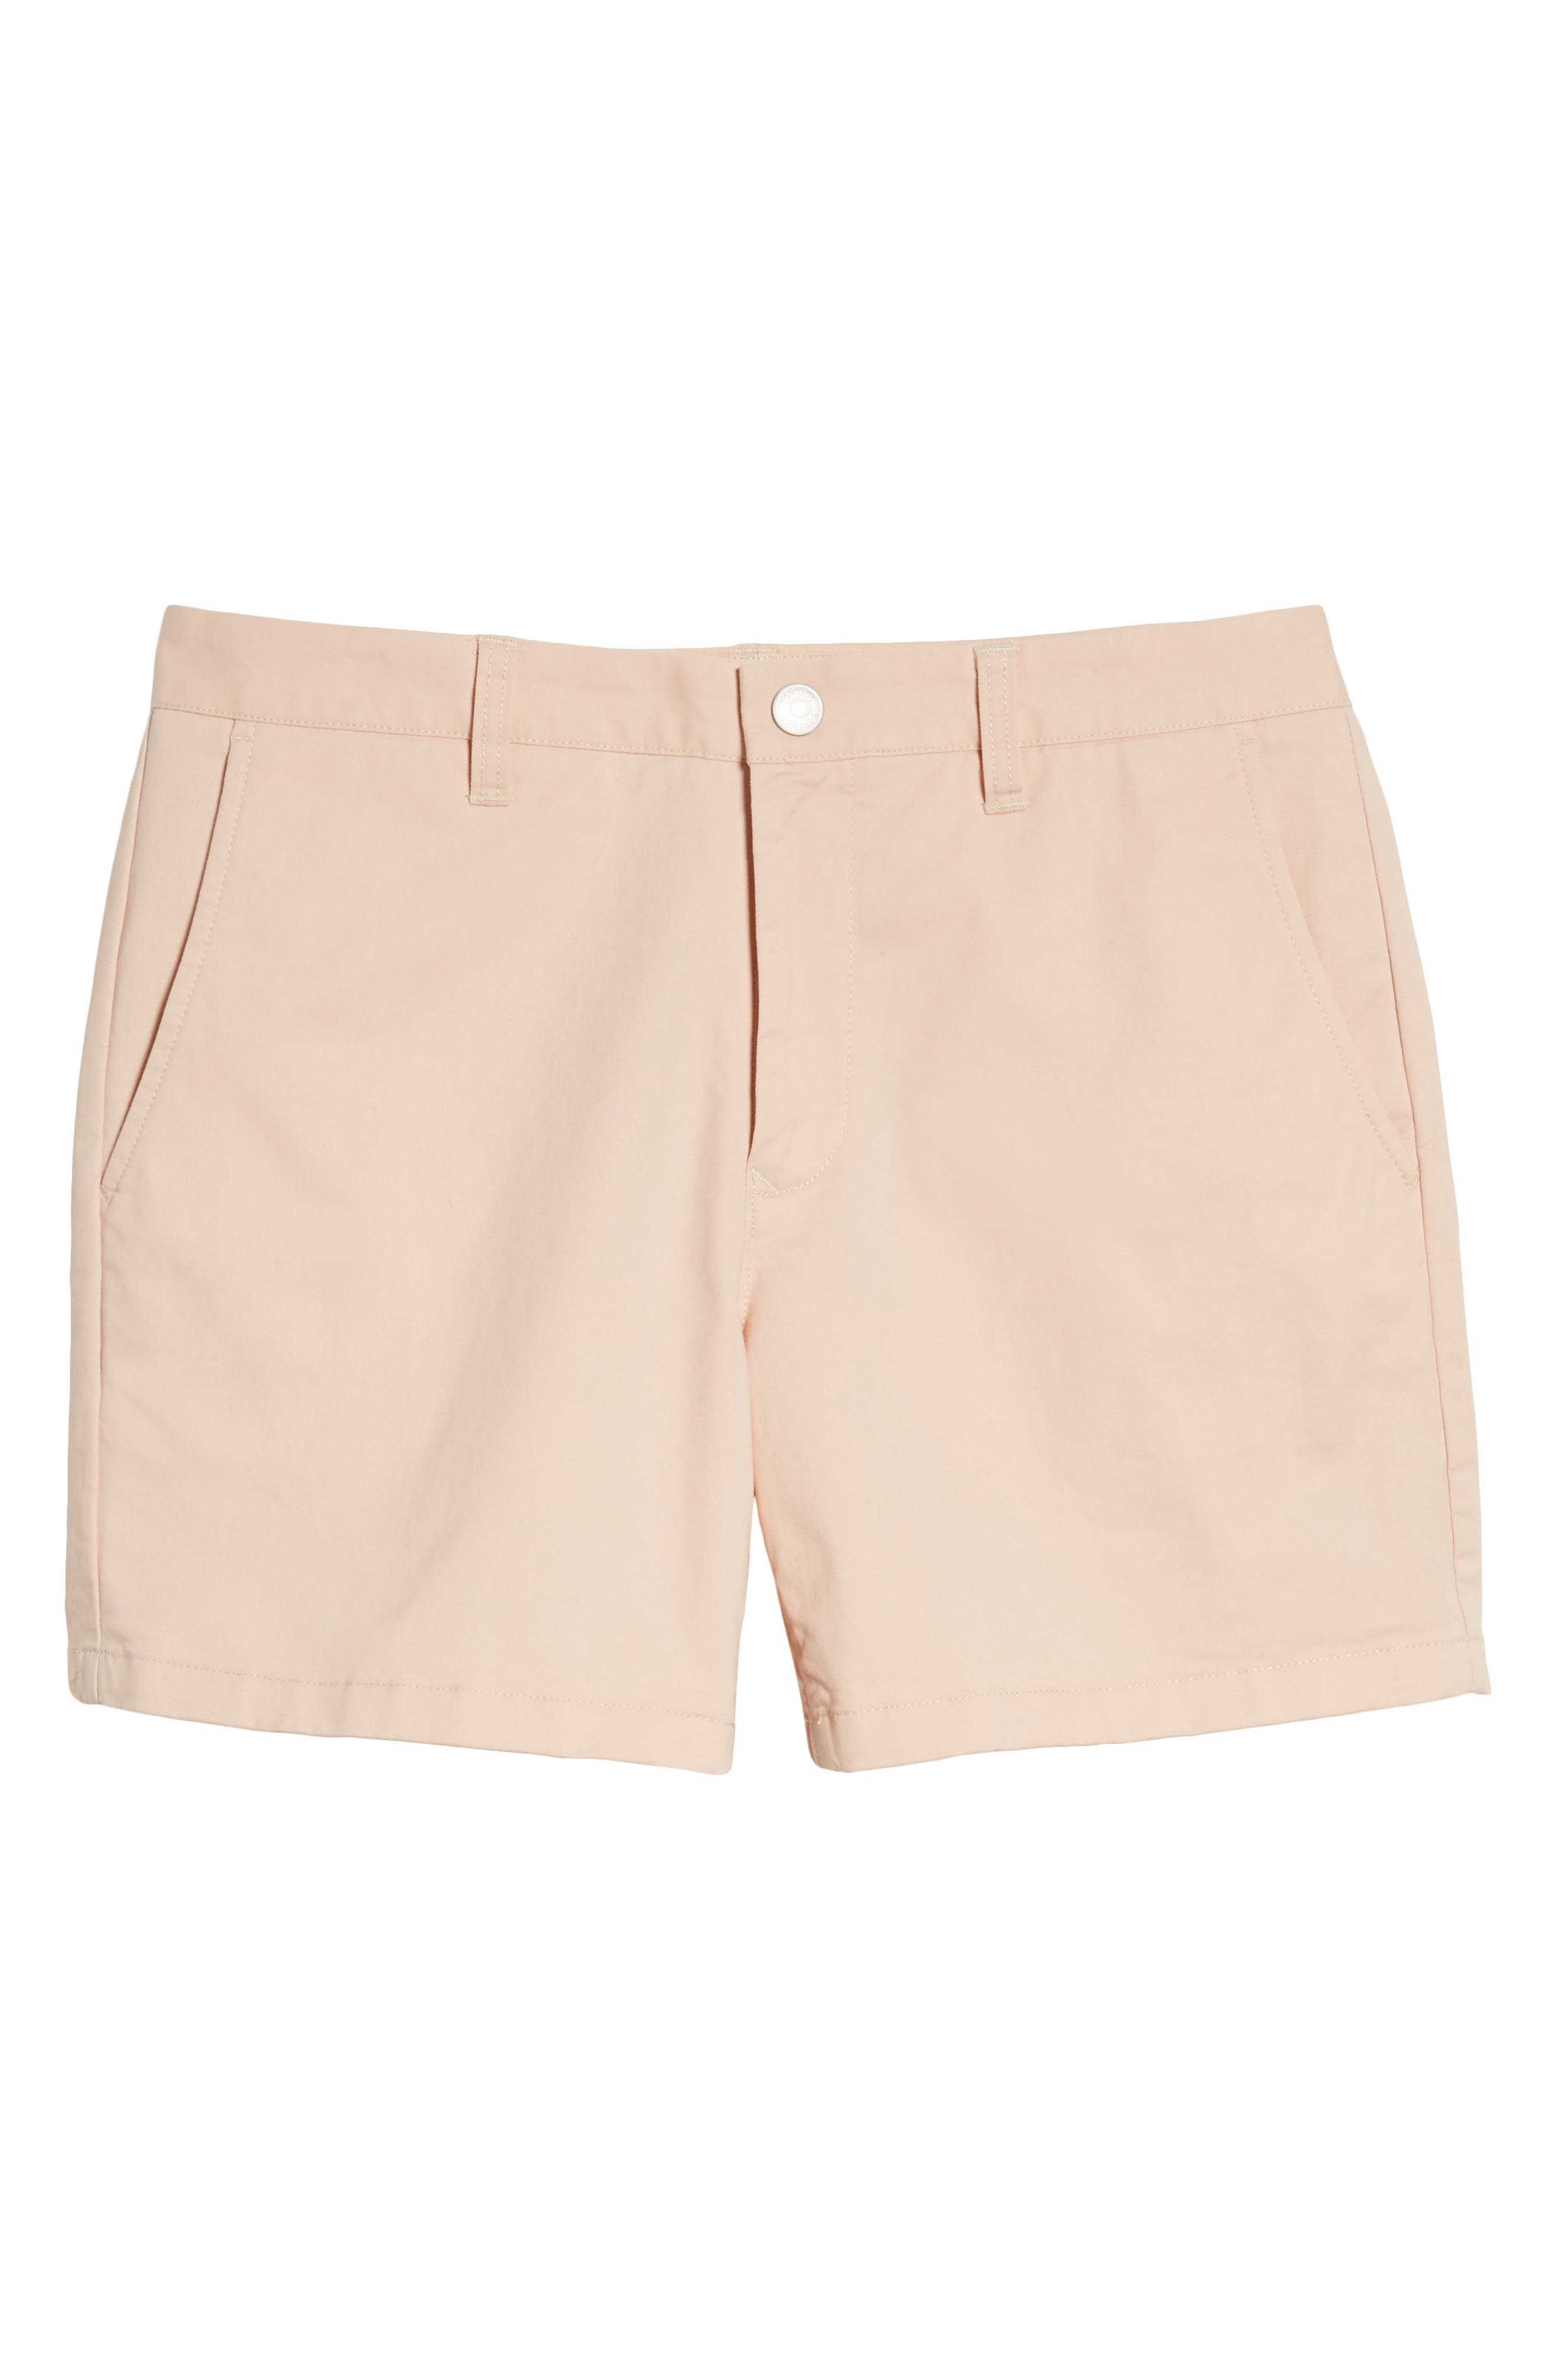 Stretch Washed Chino 5-Inch Shorts,                             Alternate thumbnail 159, color,